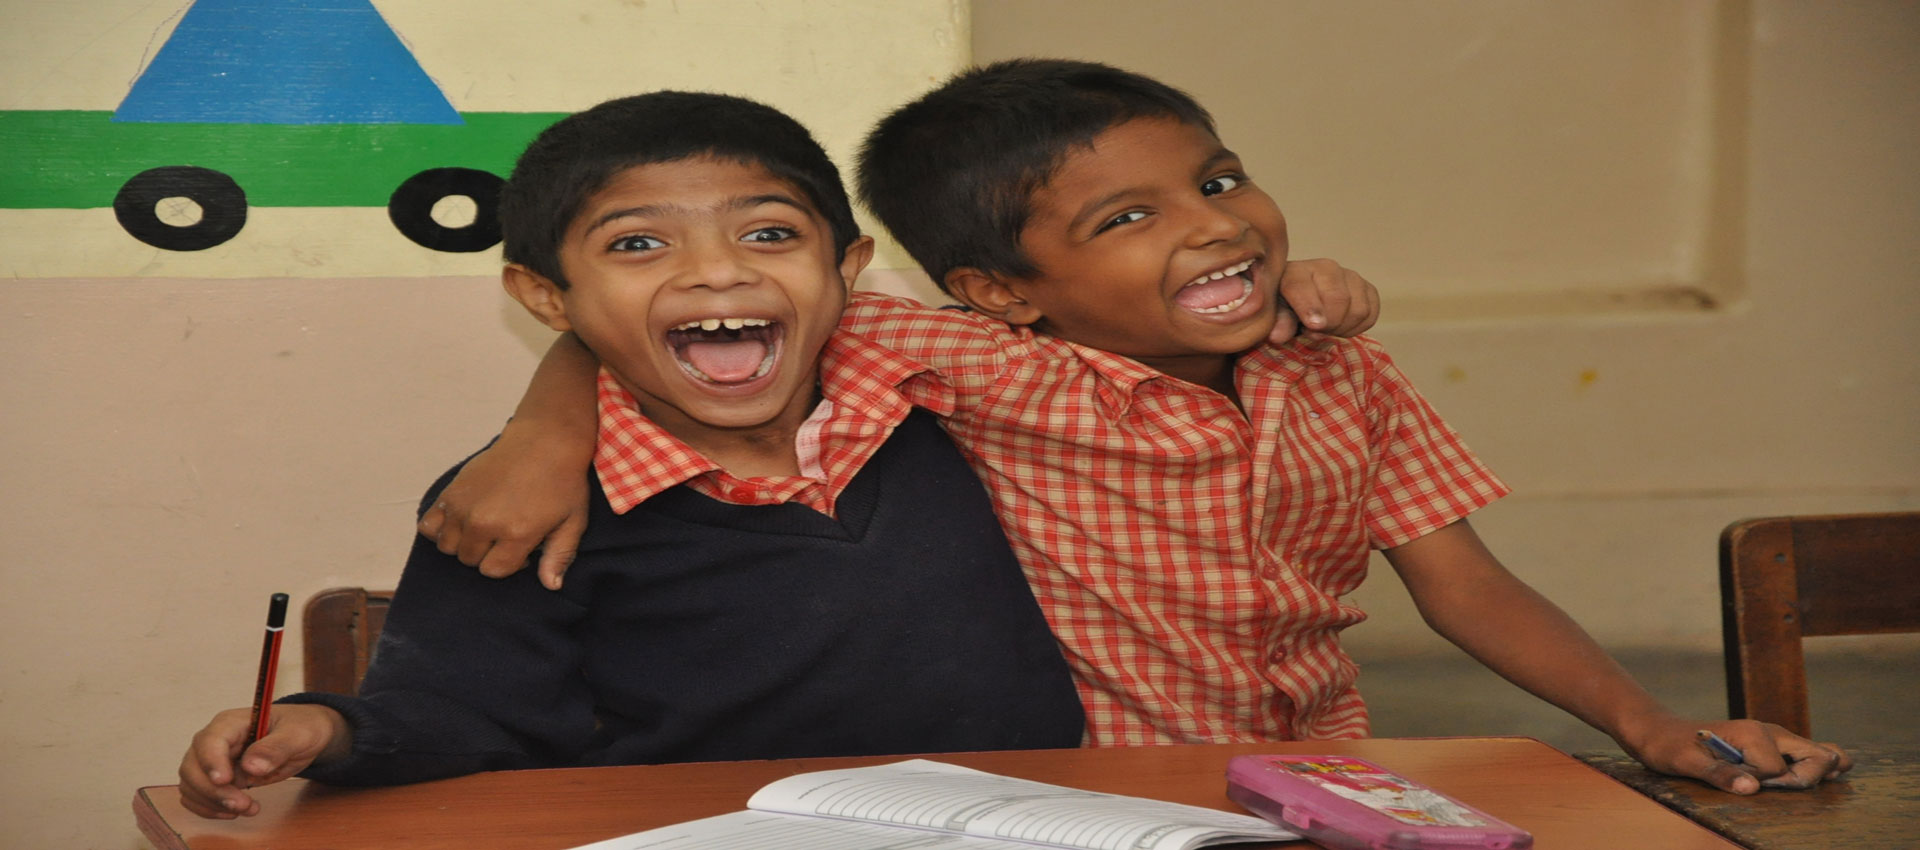 Students from Shradhanjali Integrated School, APD India